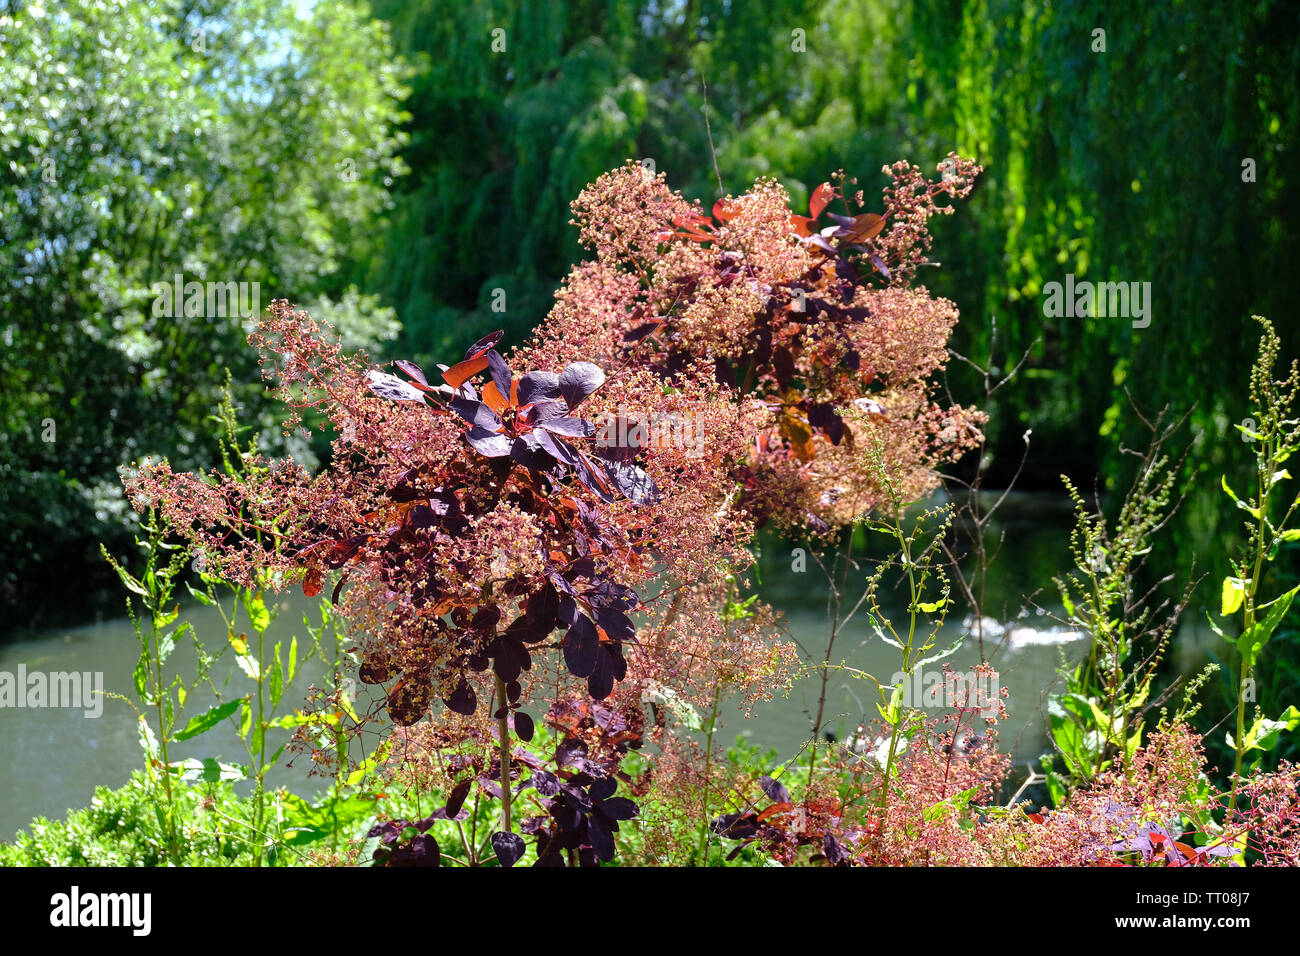 West Sussex, England, UK. Cotinus Coggygria 'Royal Purple' Smoke Tree shrub growing in early summer beside a large garden pond. - Stock Image